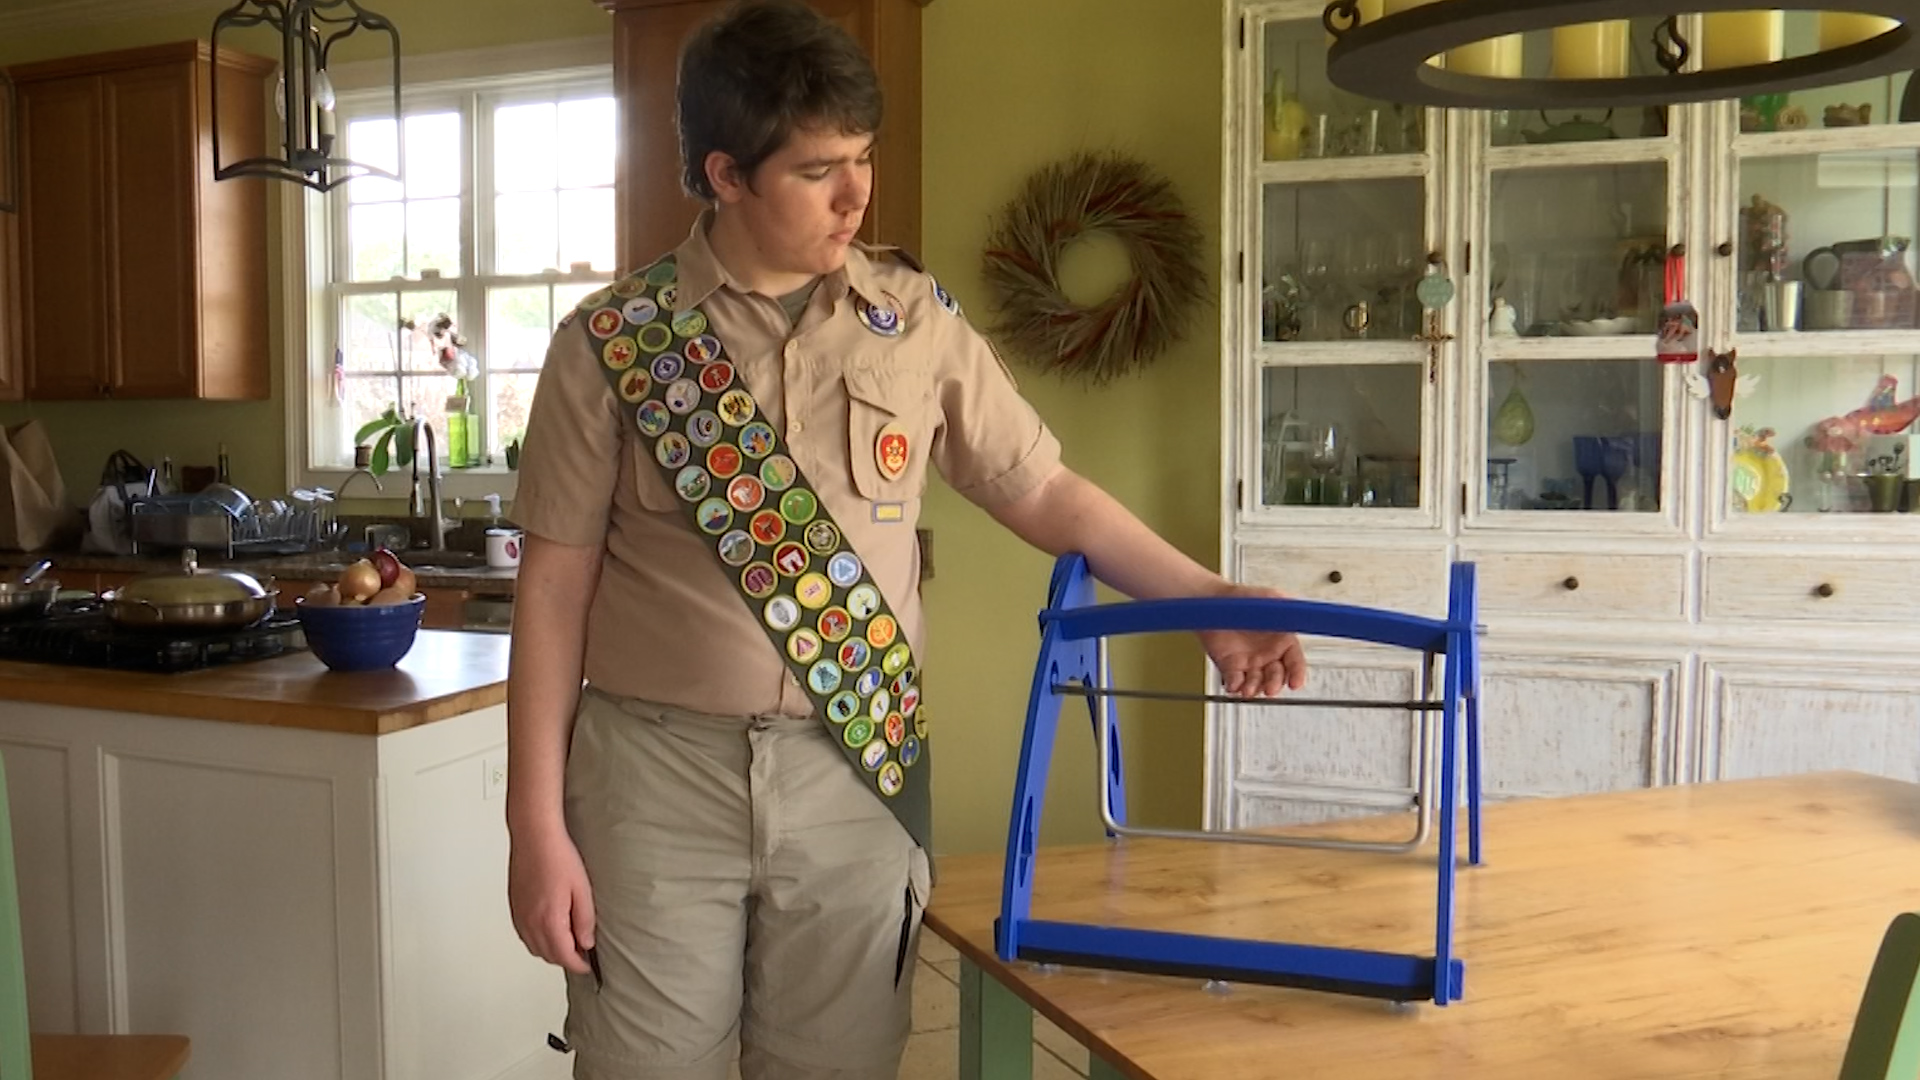 Boy scout's service project aims to help students with sensory issues